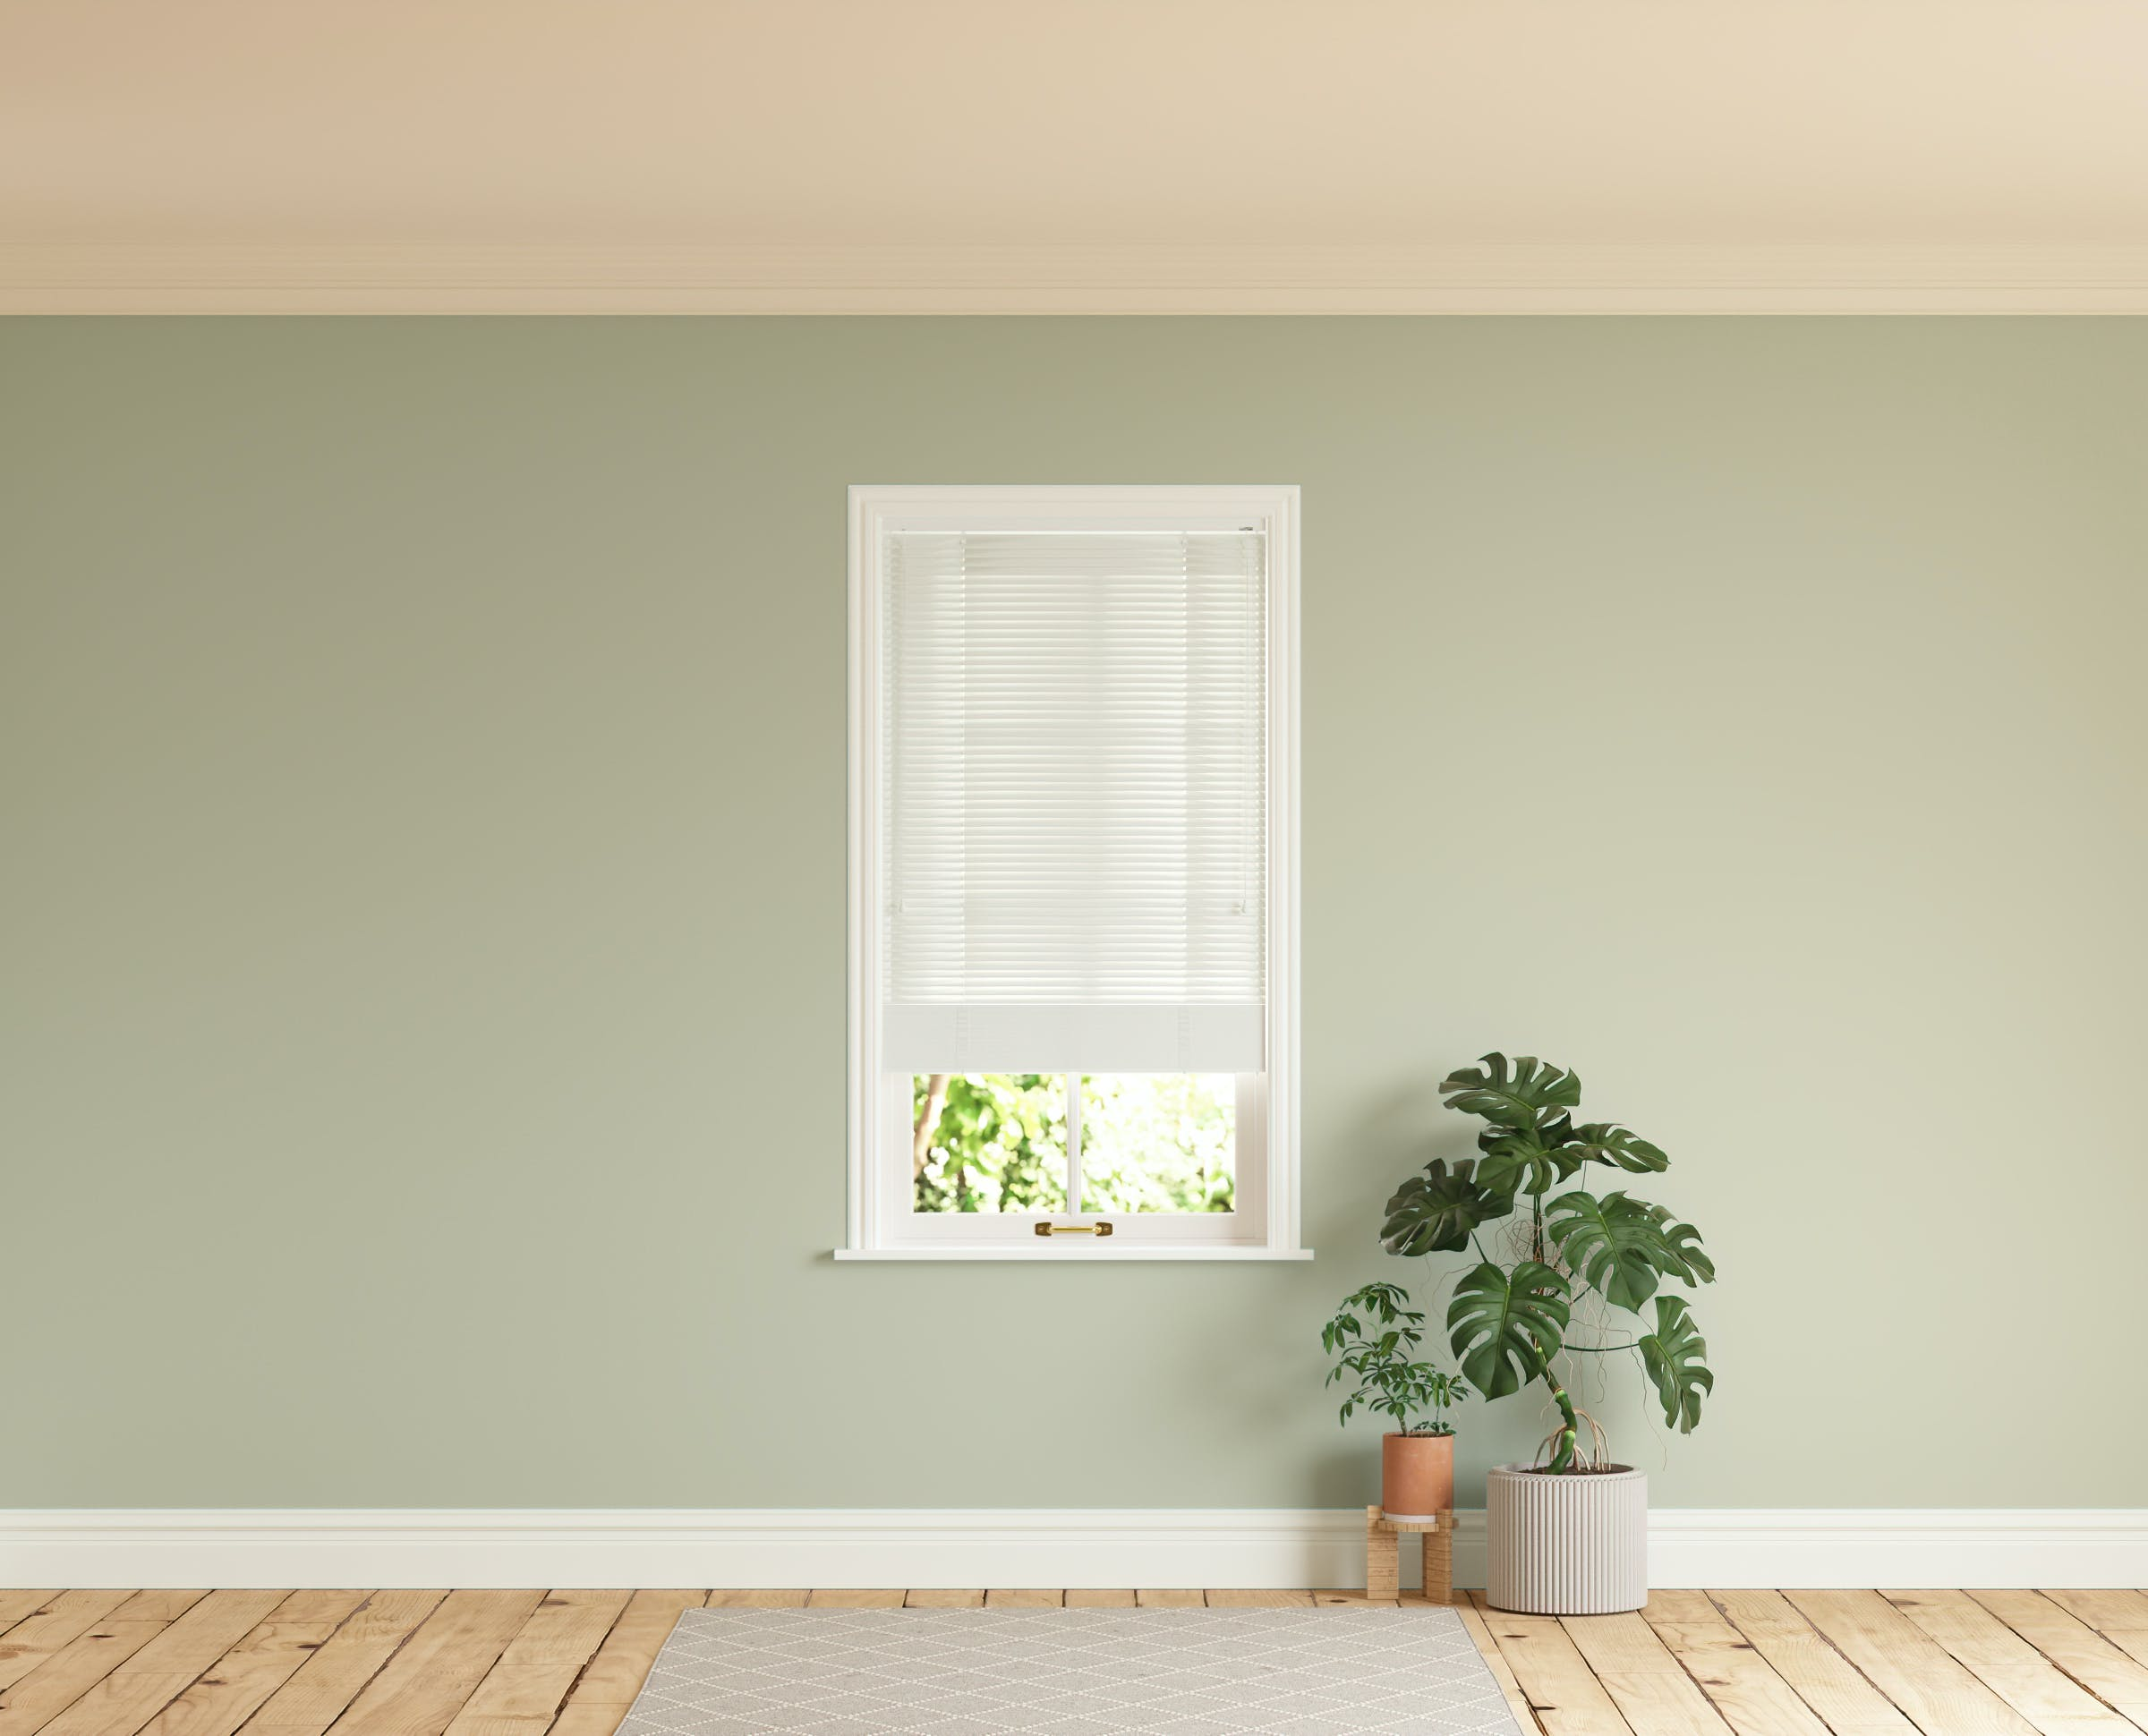 Room with walls painted in Lick Green 01 and White 01 Venetian blinds